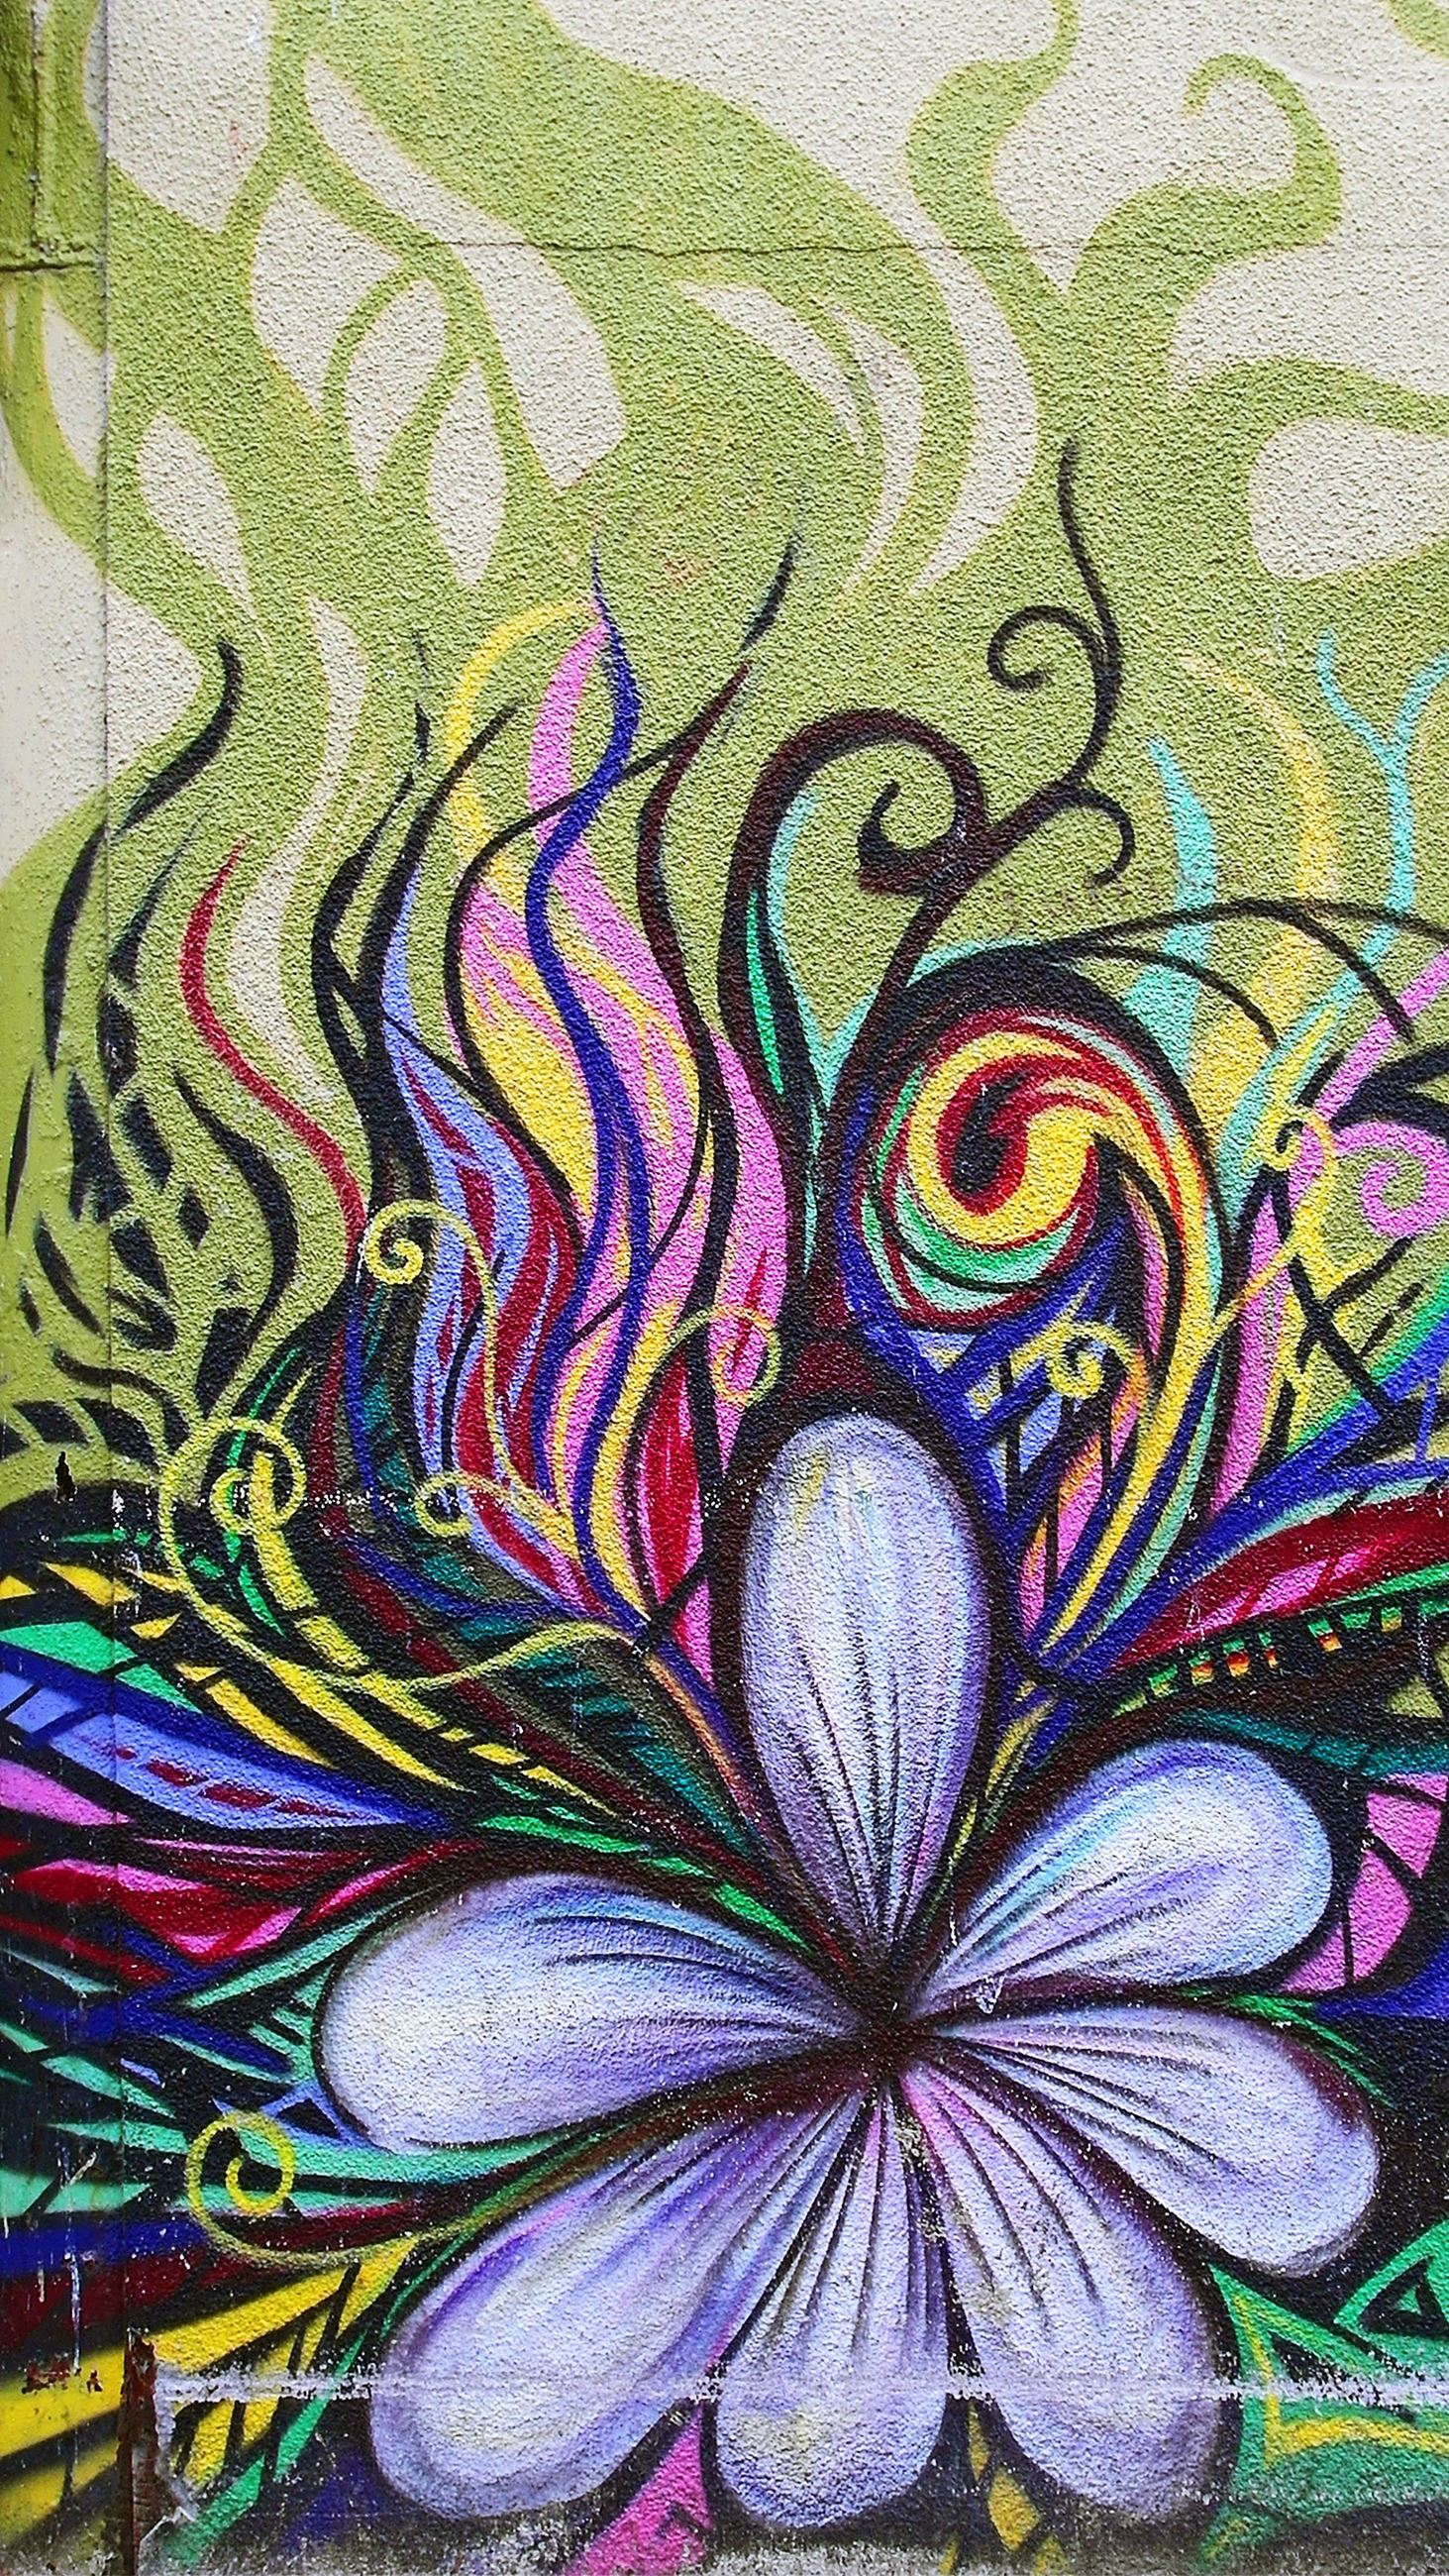 painting of purple flower with yellow, pink, and green accents